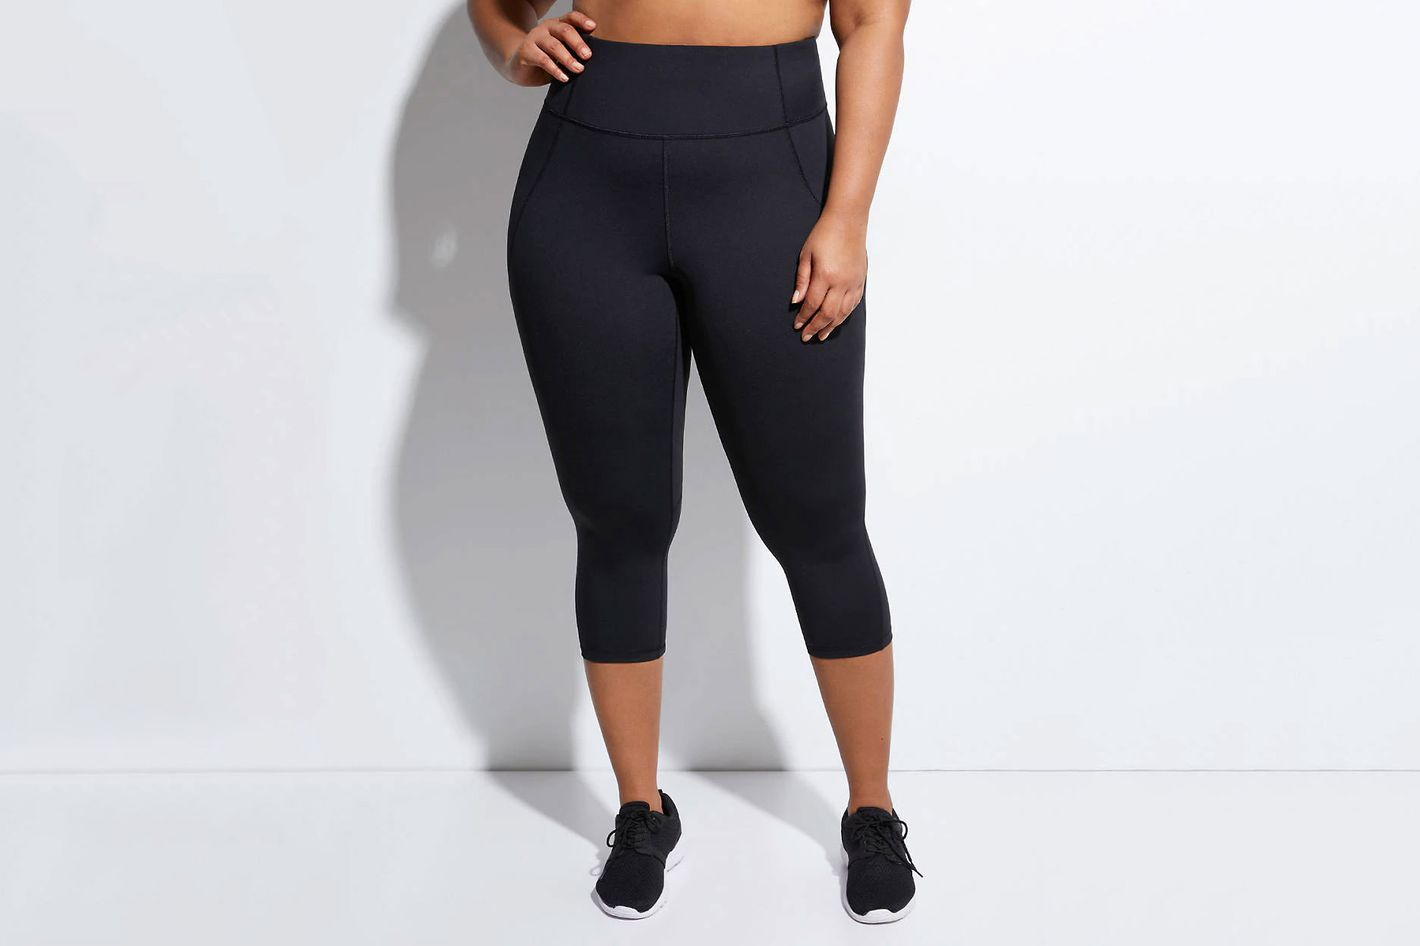 061c2cea9bd875 The Best Plus-Size Workout Clothes